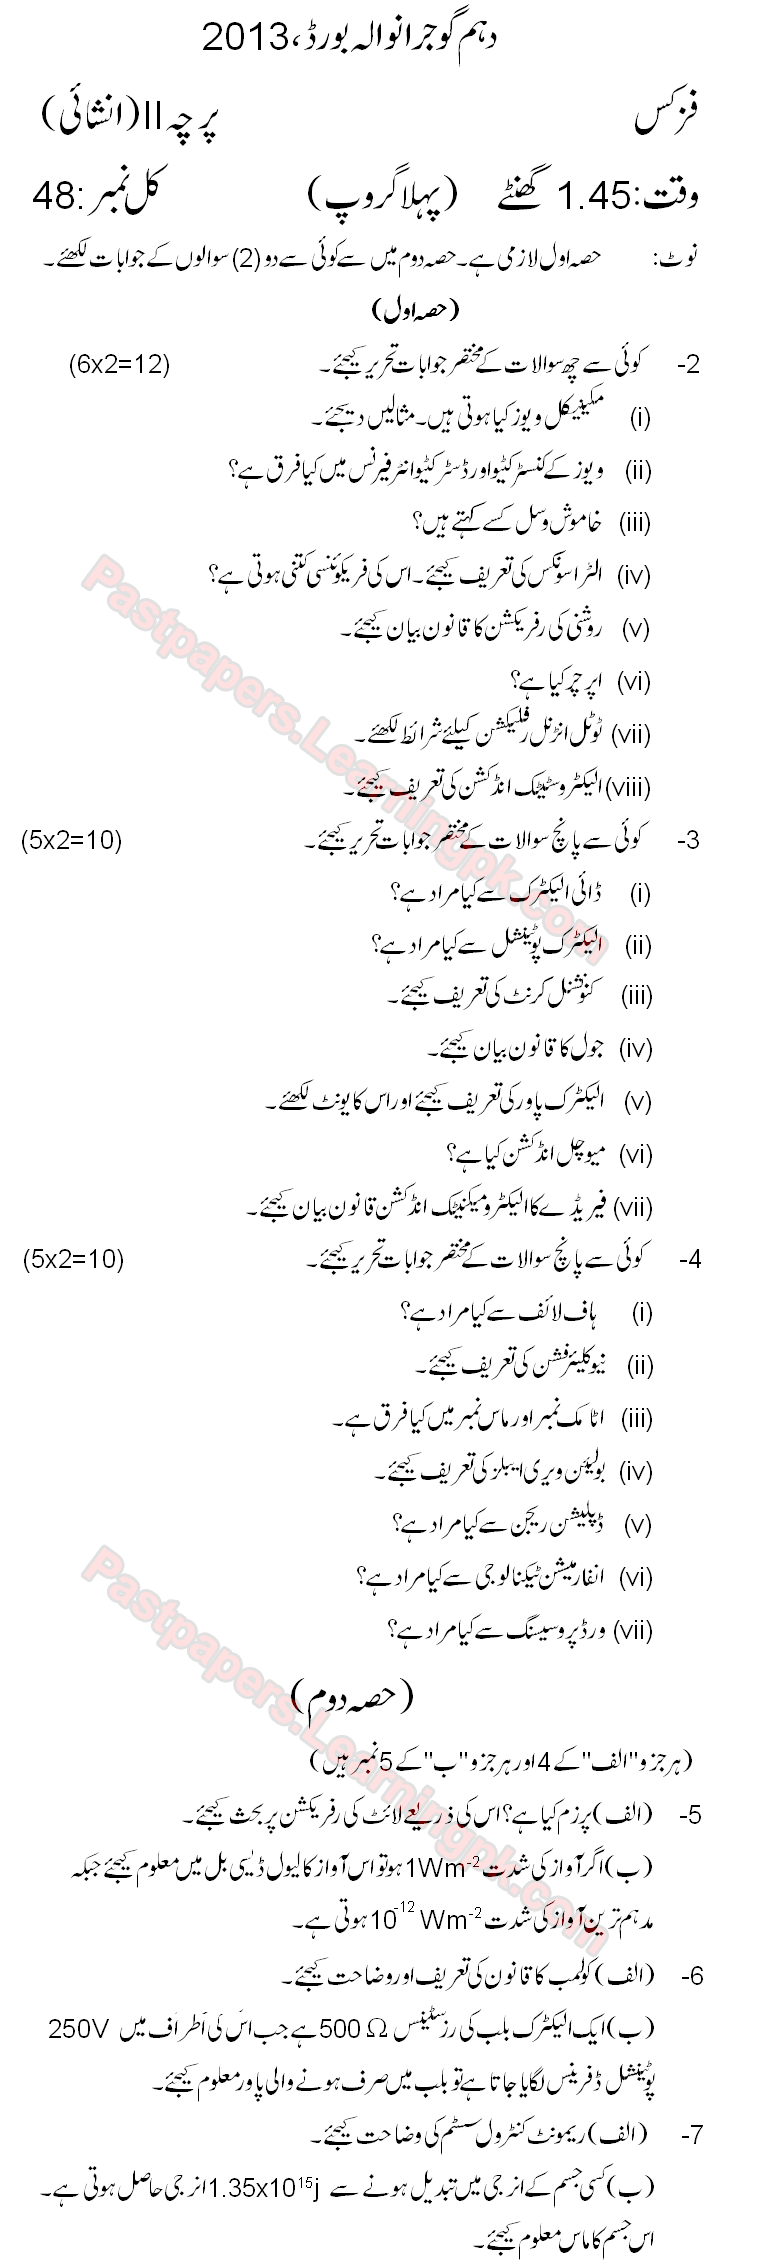 Gujranwala Board 2013 10th Class Physics 5 Year Old Past Guess Paper